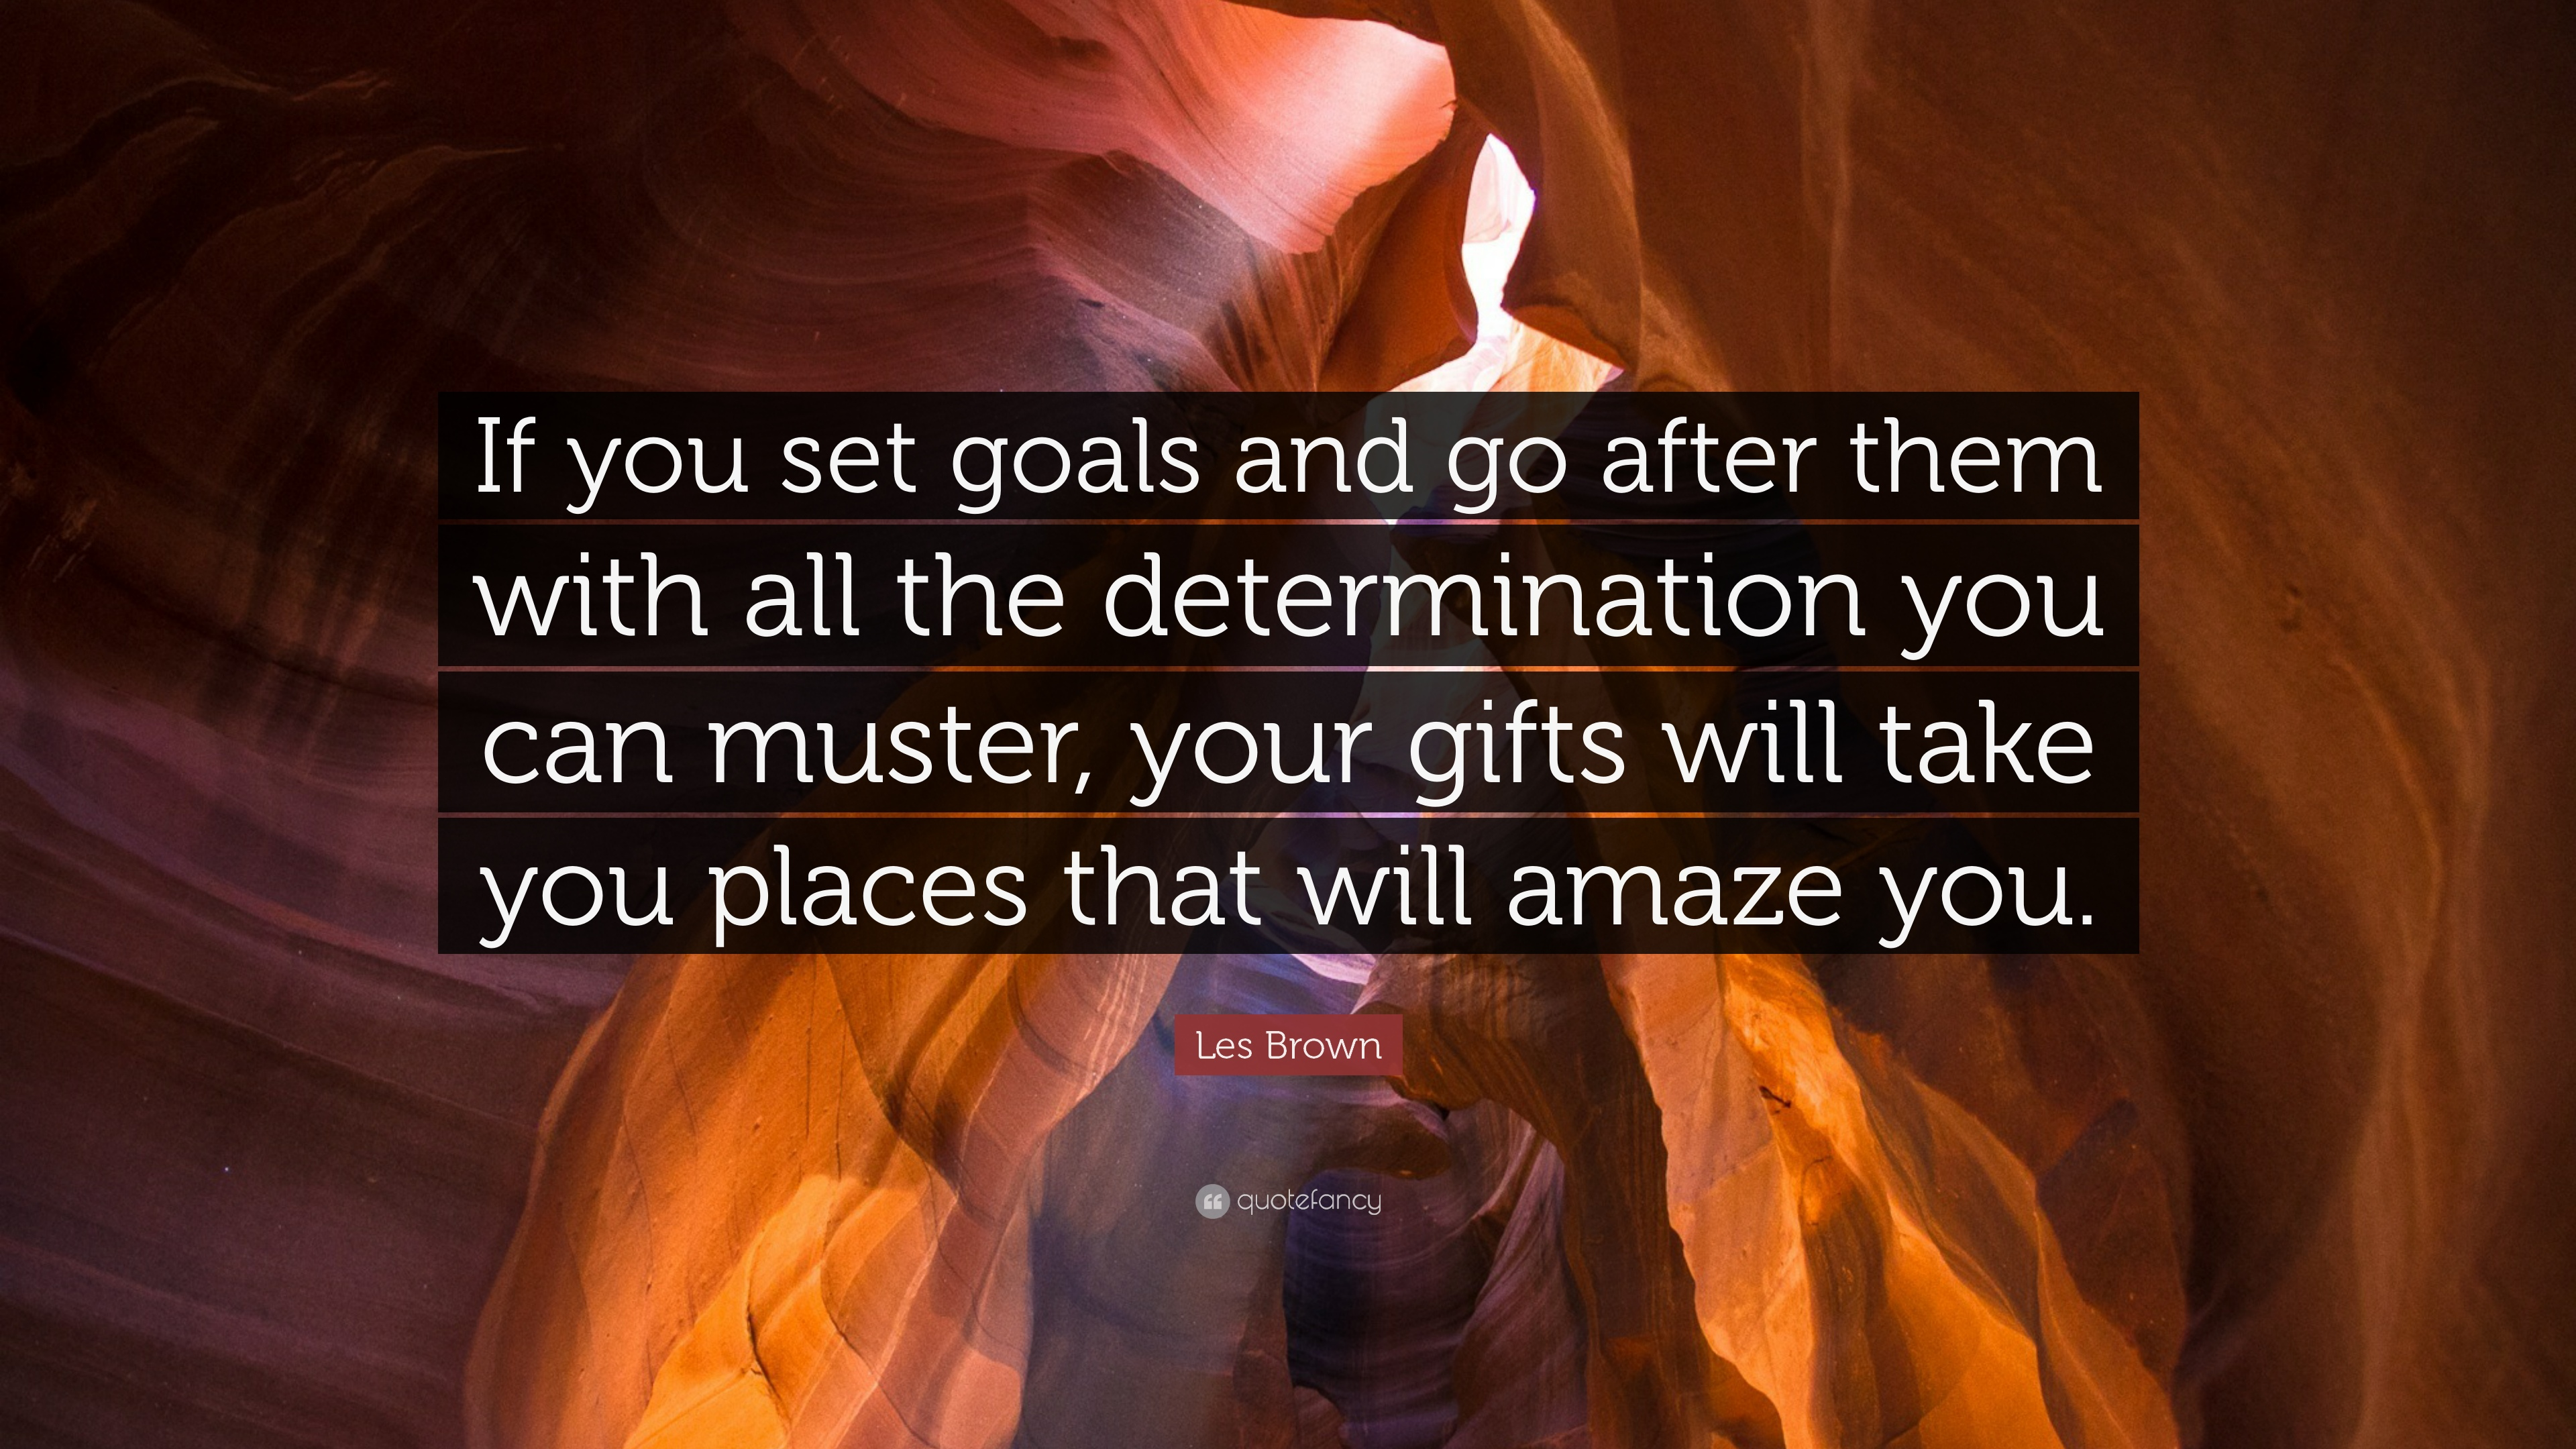 Les Brown Quotes | Les Brown Quote If You Set Goals And Go After Them With All The